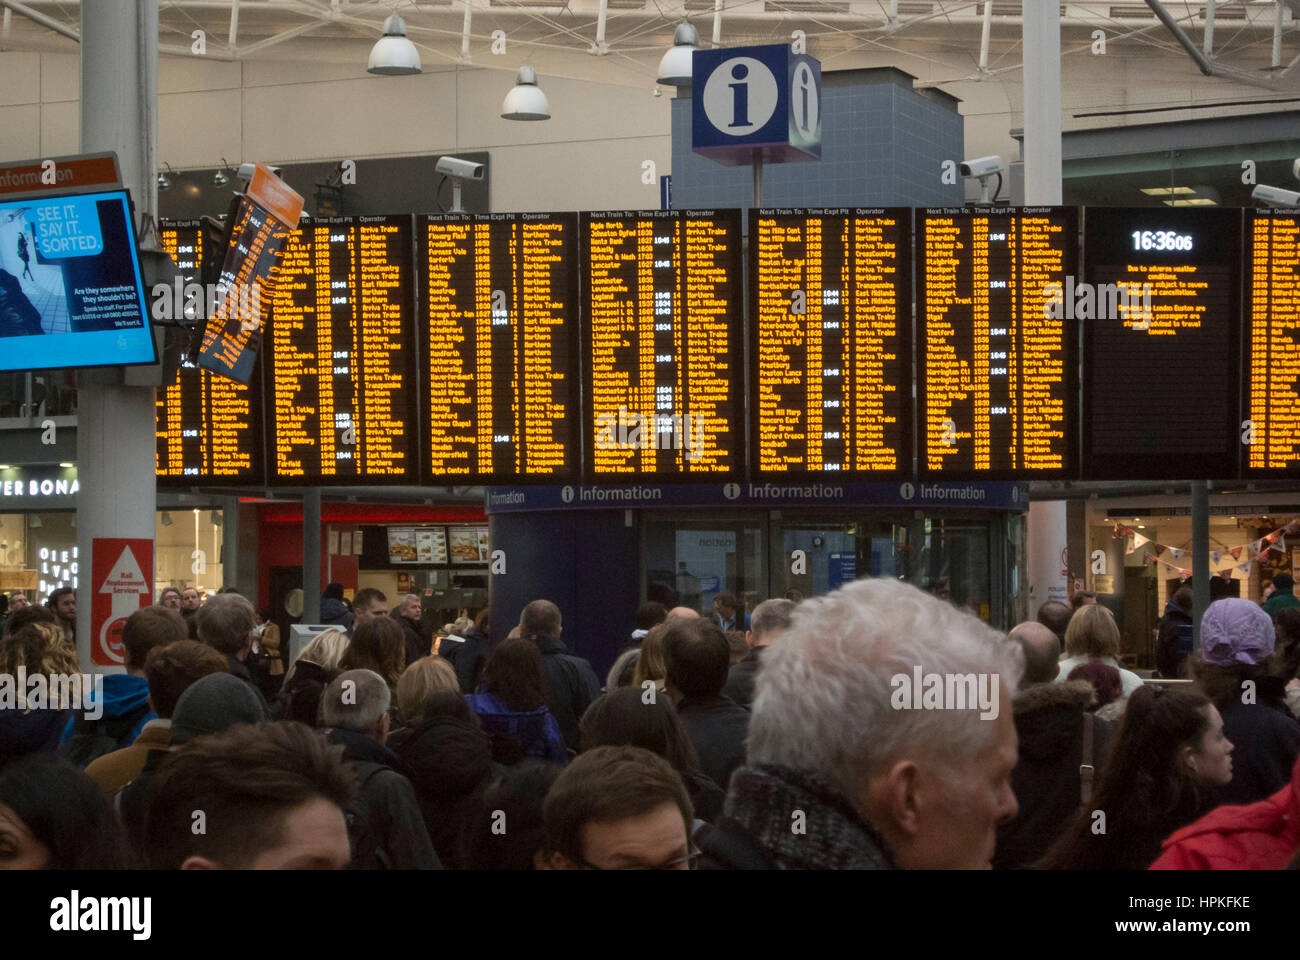 Manchester, UK. 23rd Feb, 2017. Storm Doris 'Weather bomb' causes severe delays on all trains from Manchester - Stock Image